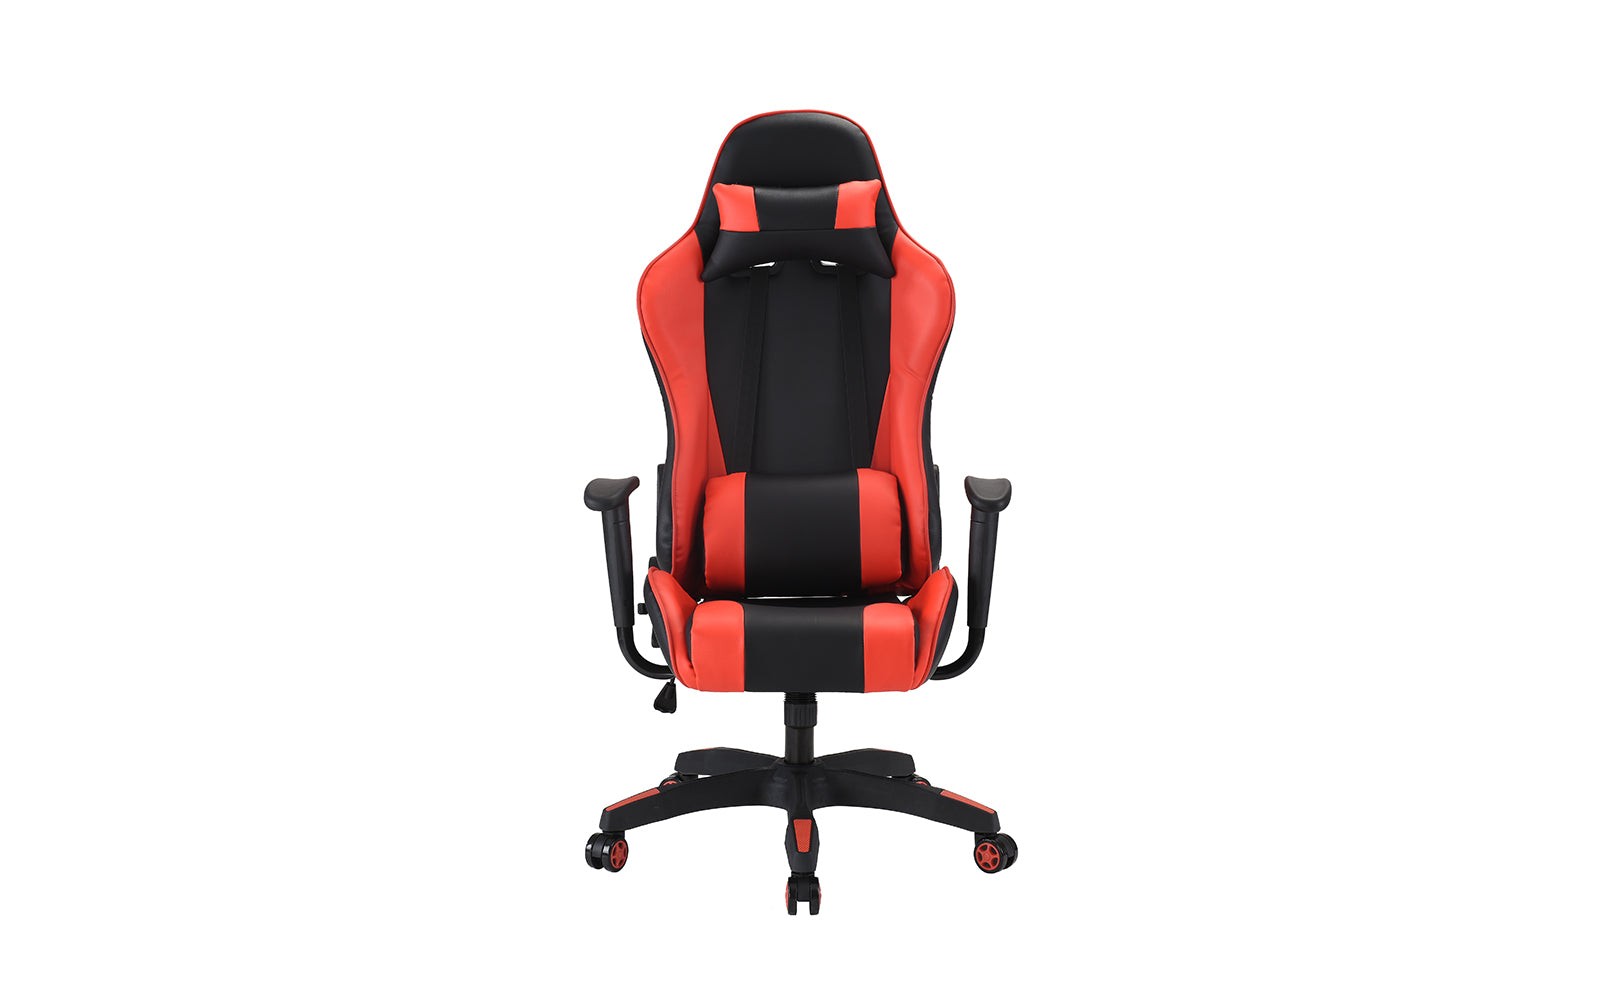 Leather Swivel Gaming Office Chair Image